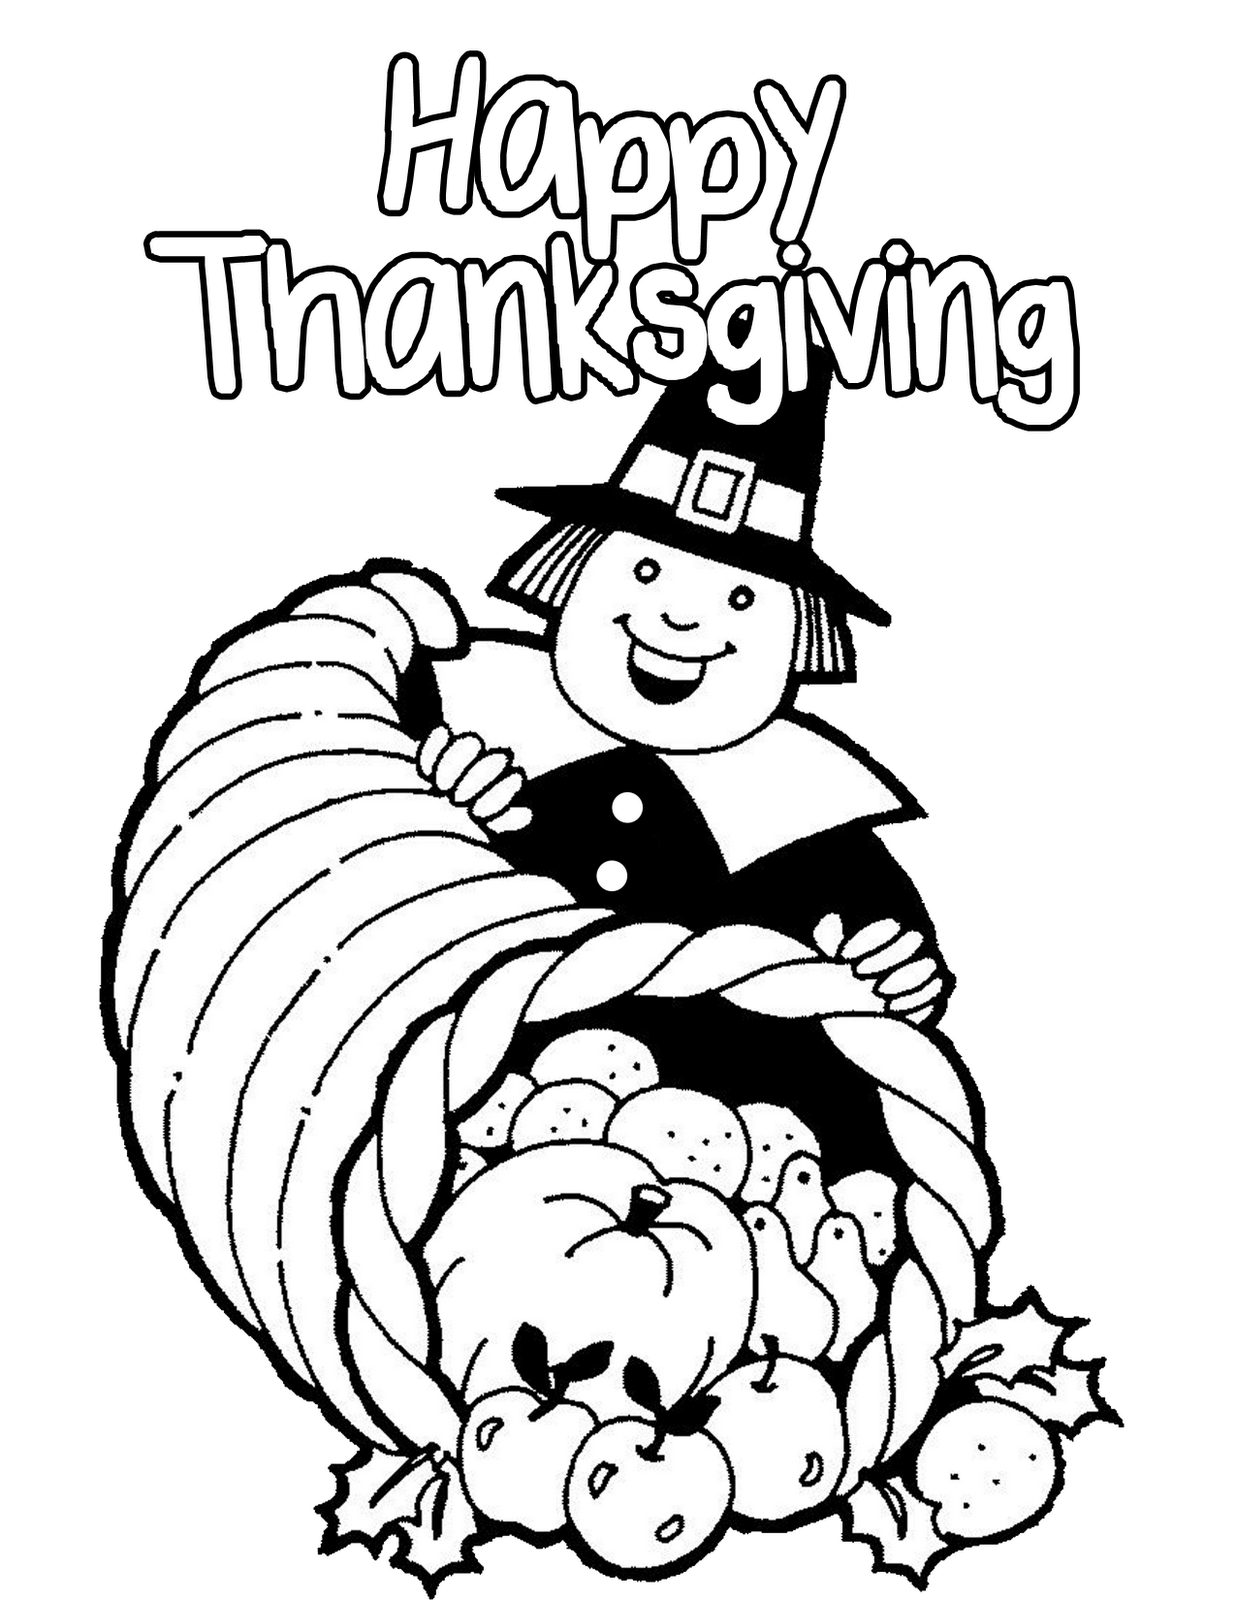 Coloring pages printable thanksgiving